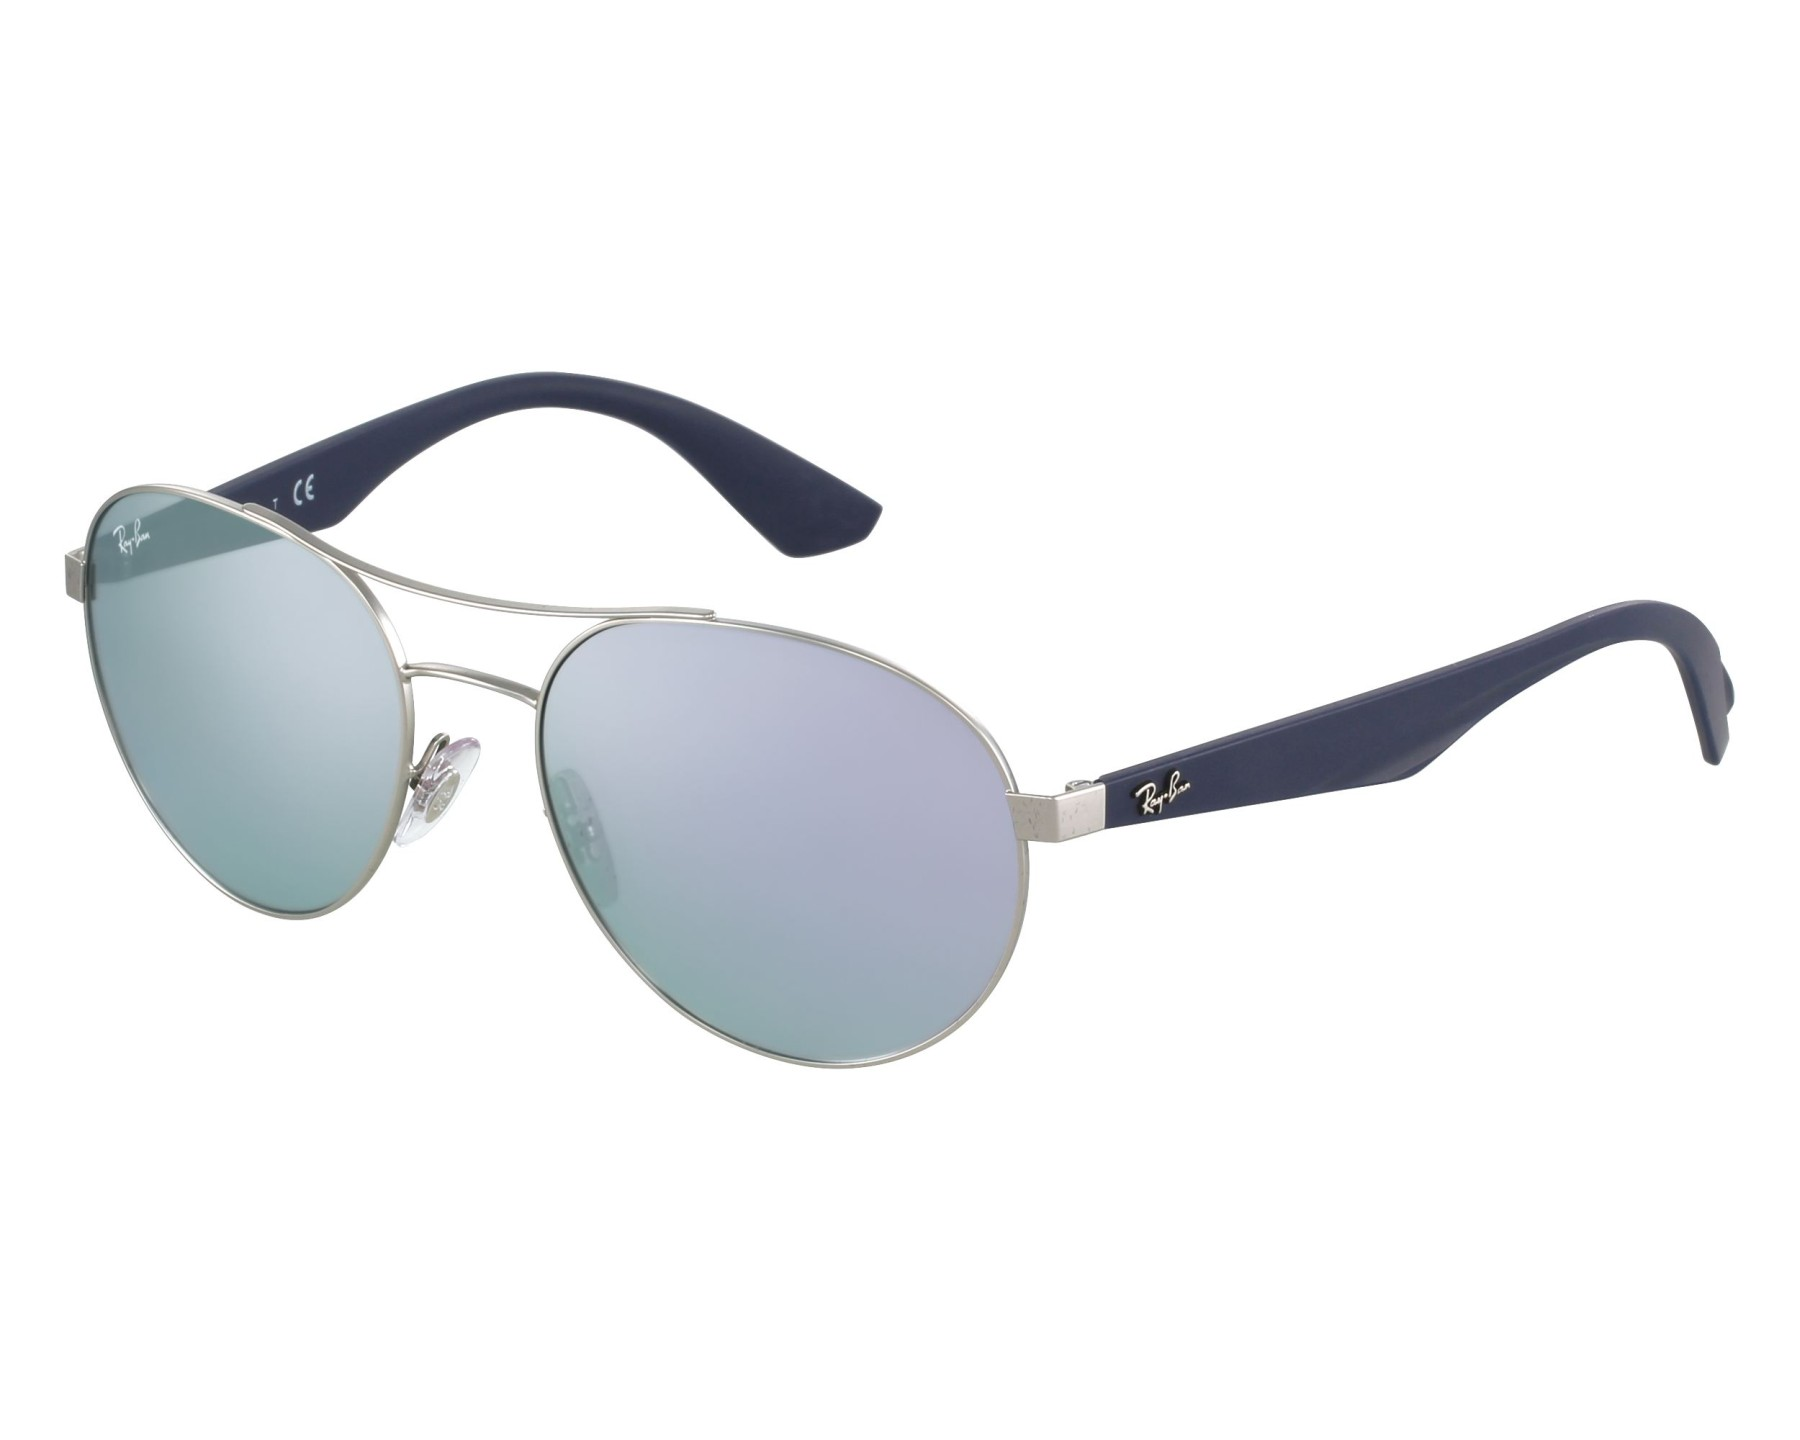 648759a6f74 Sunglasses Ray-Ban RB-3536 019 4V 55-18 Silver Blue front